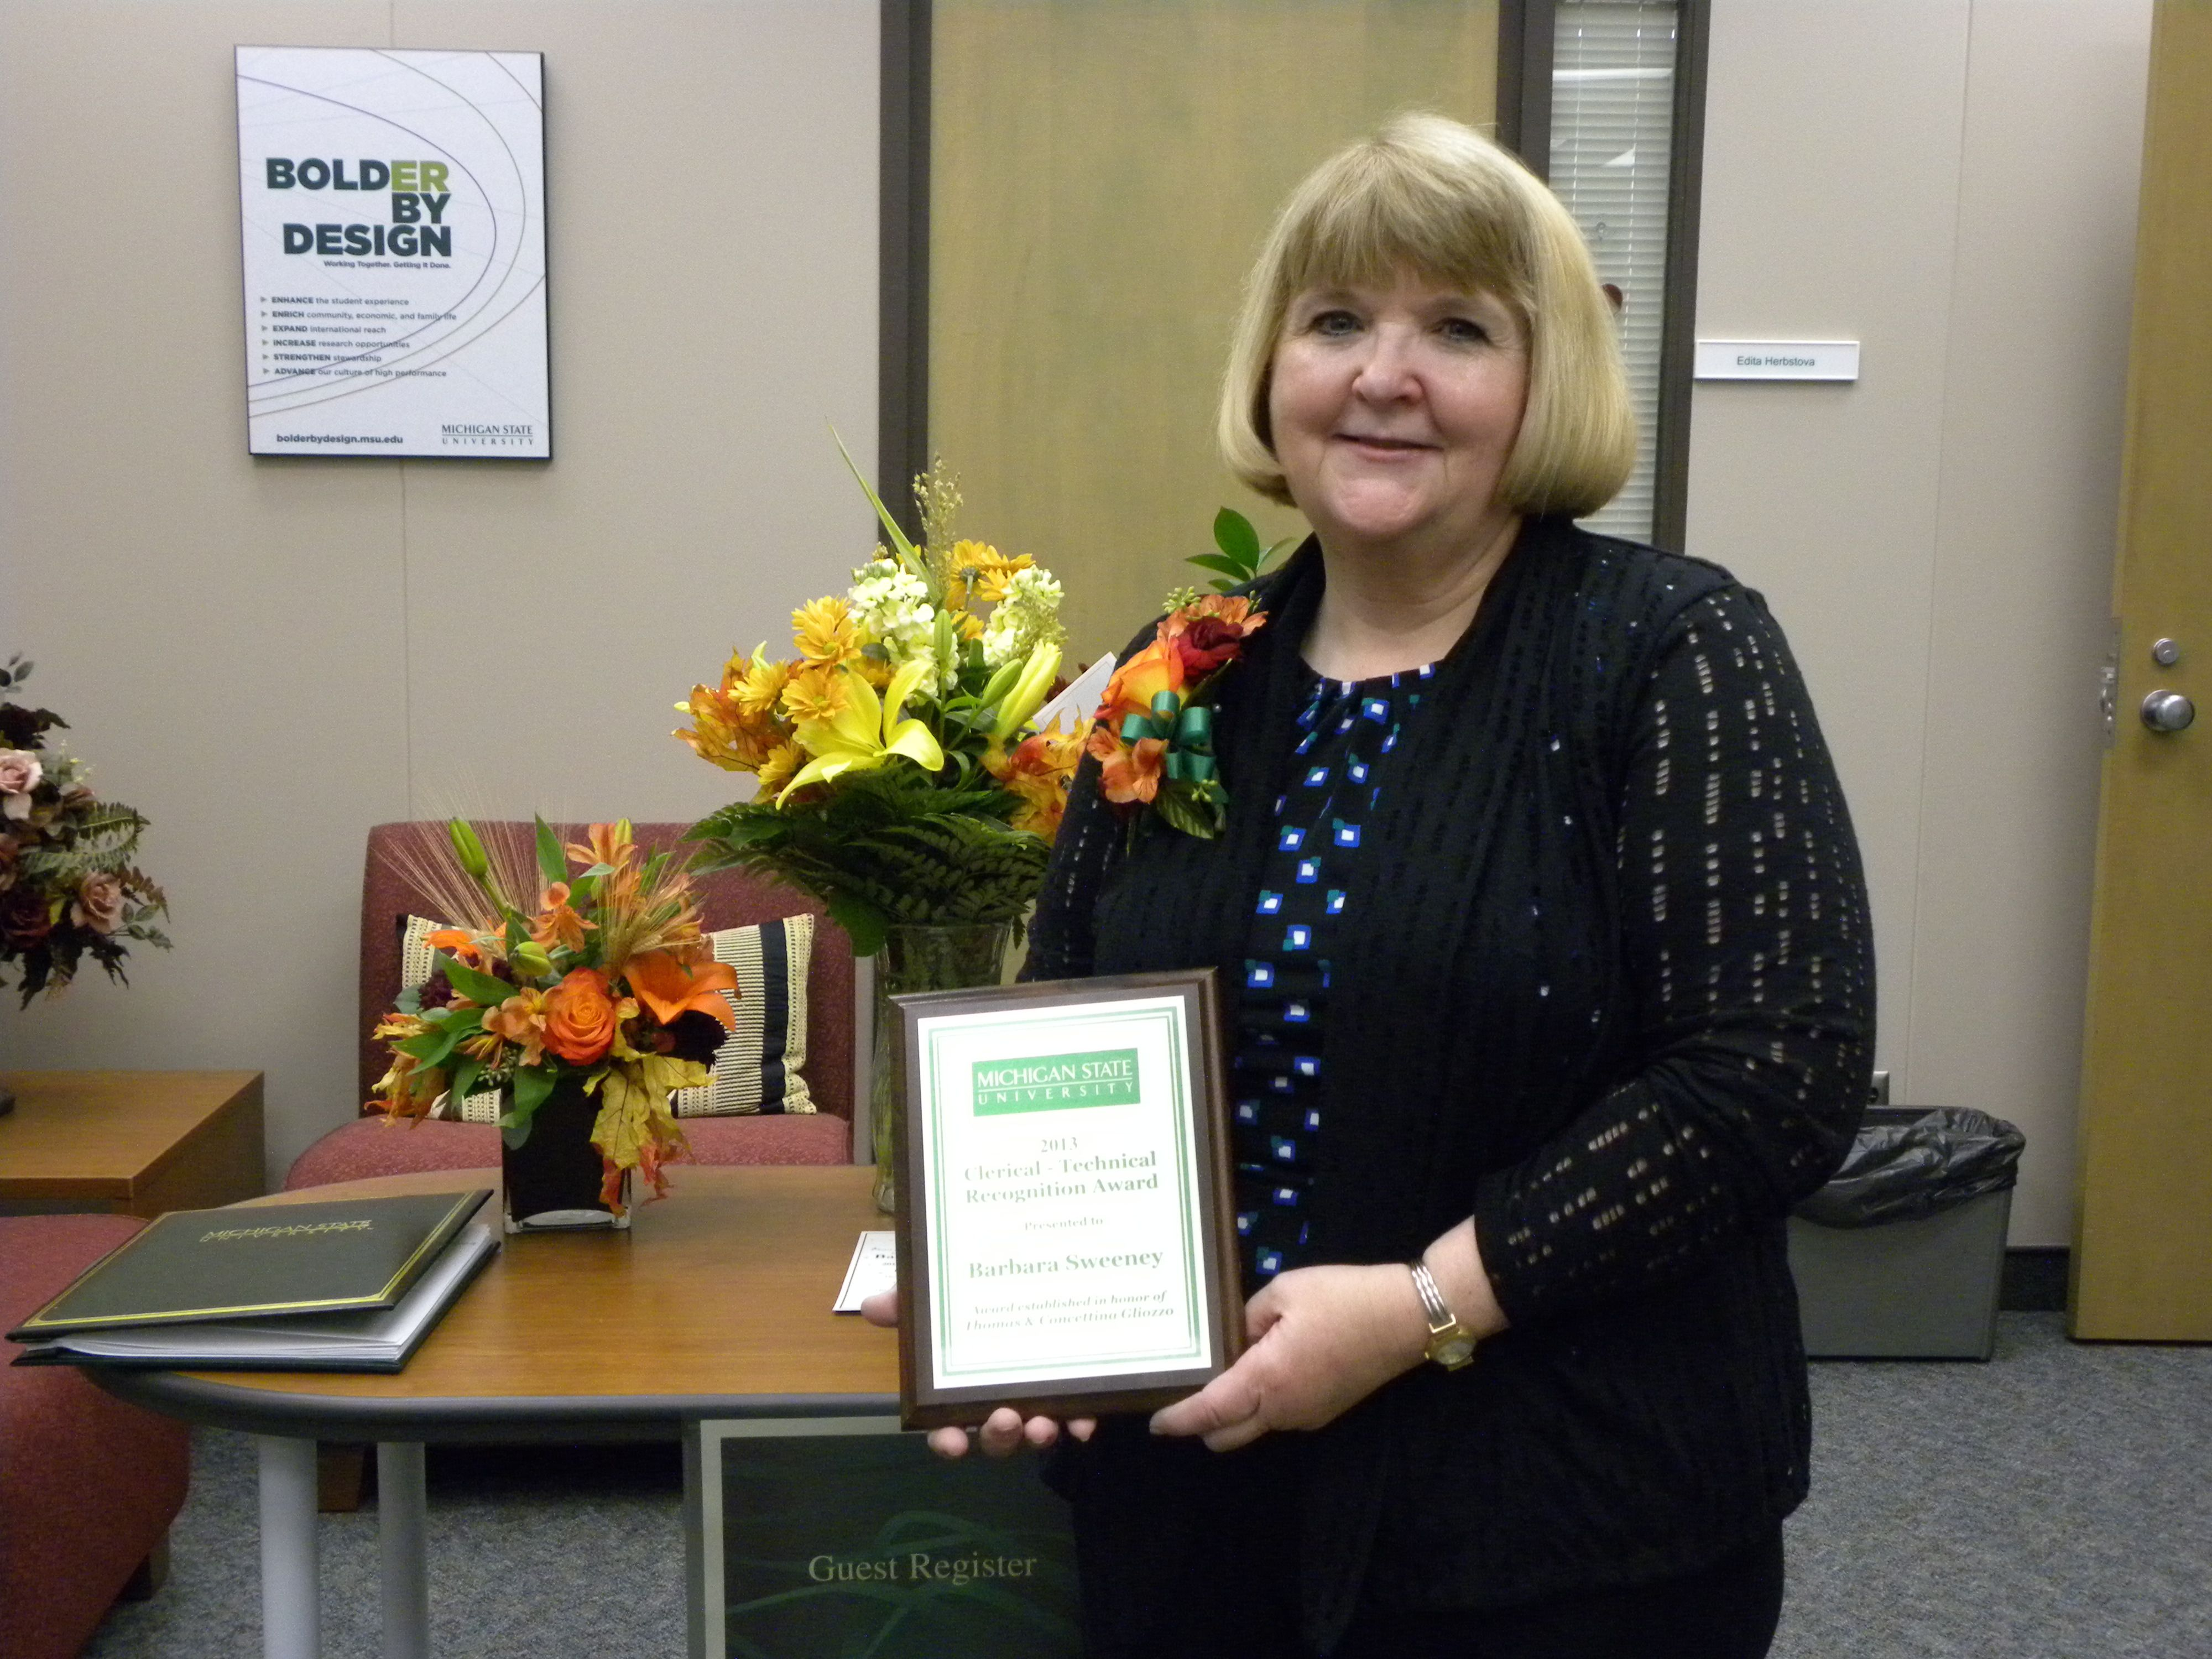 Barbara Sweeney is the winner of the annual Clerical-Technical Recognition Award. The award honors a clerical-technical support staff member for a strong work ethic and innovative thinking.